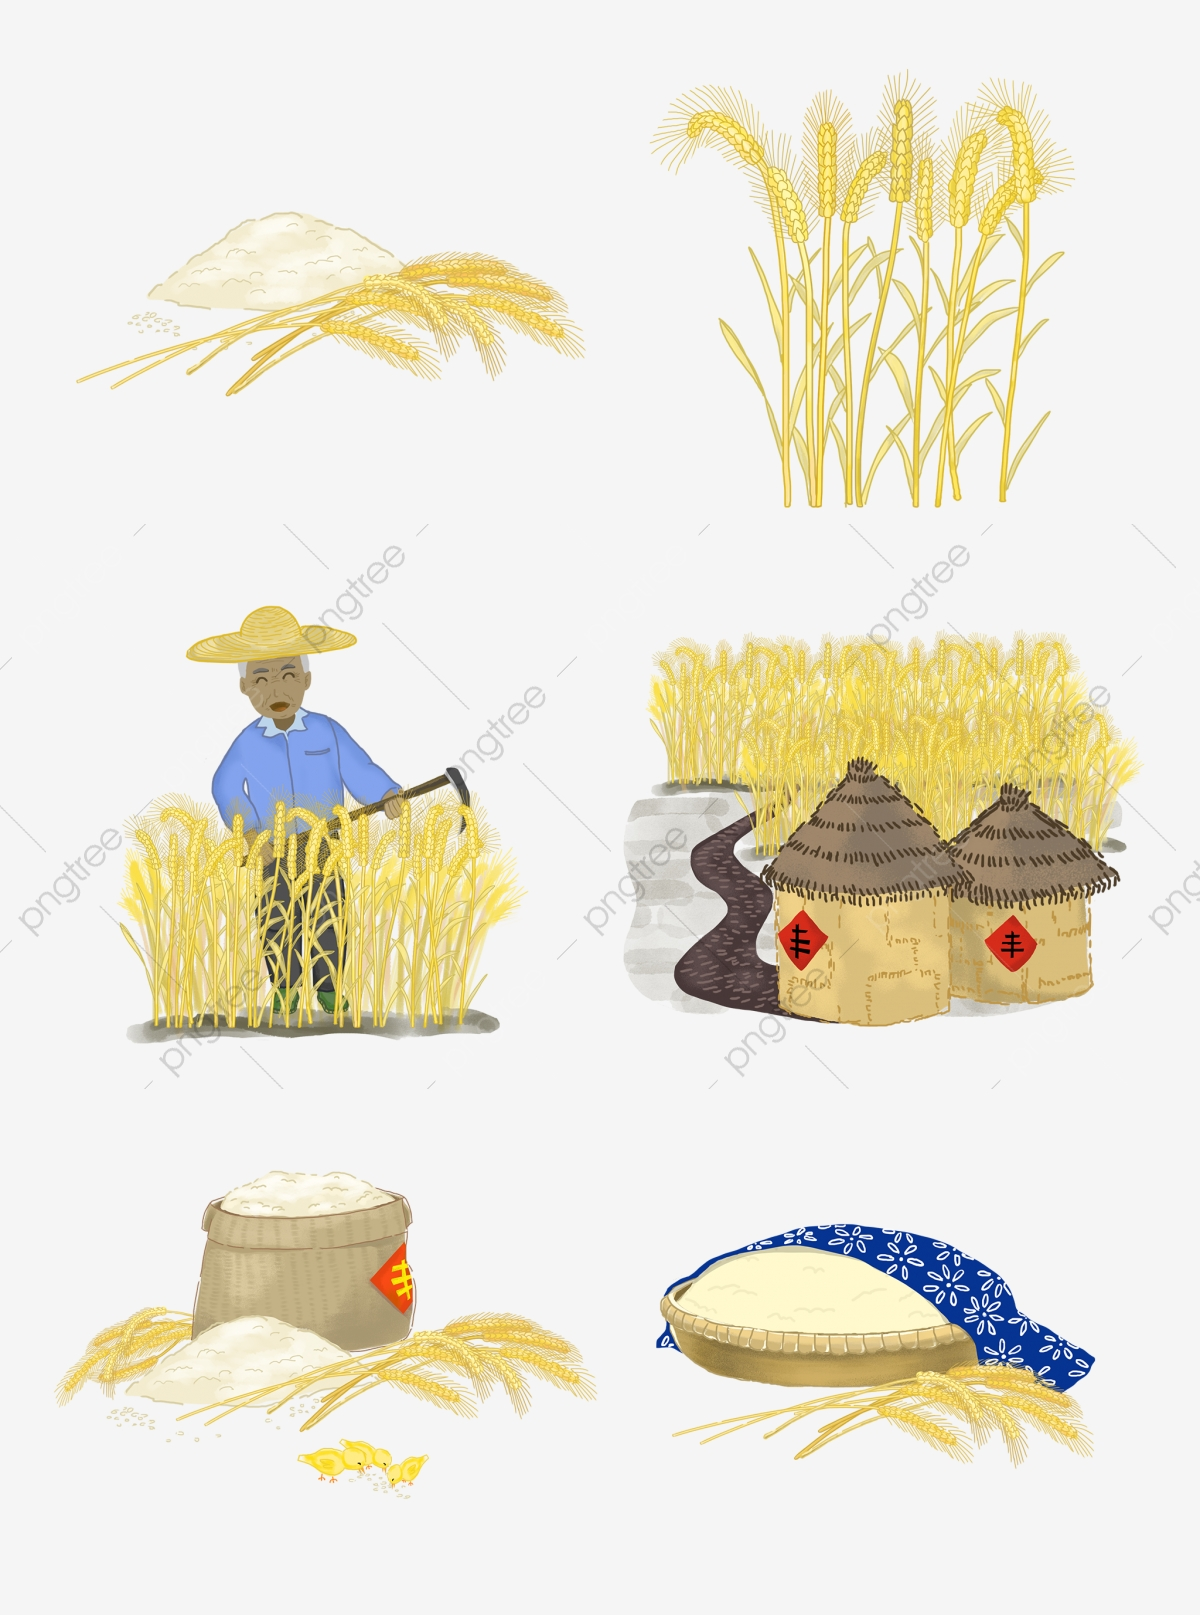 Agriculture clipart cultivation. Commercial agricultural grain granary